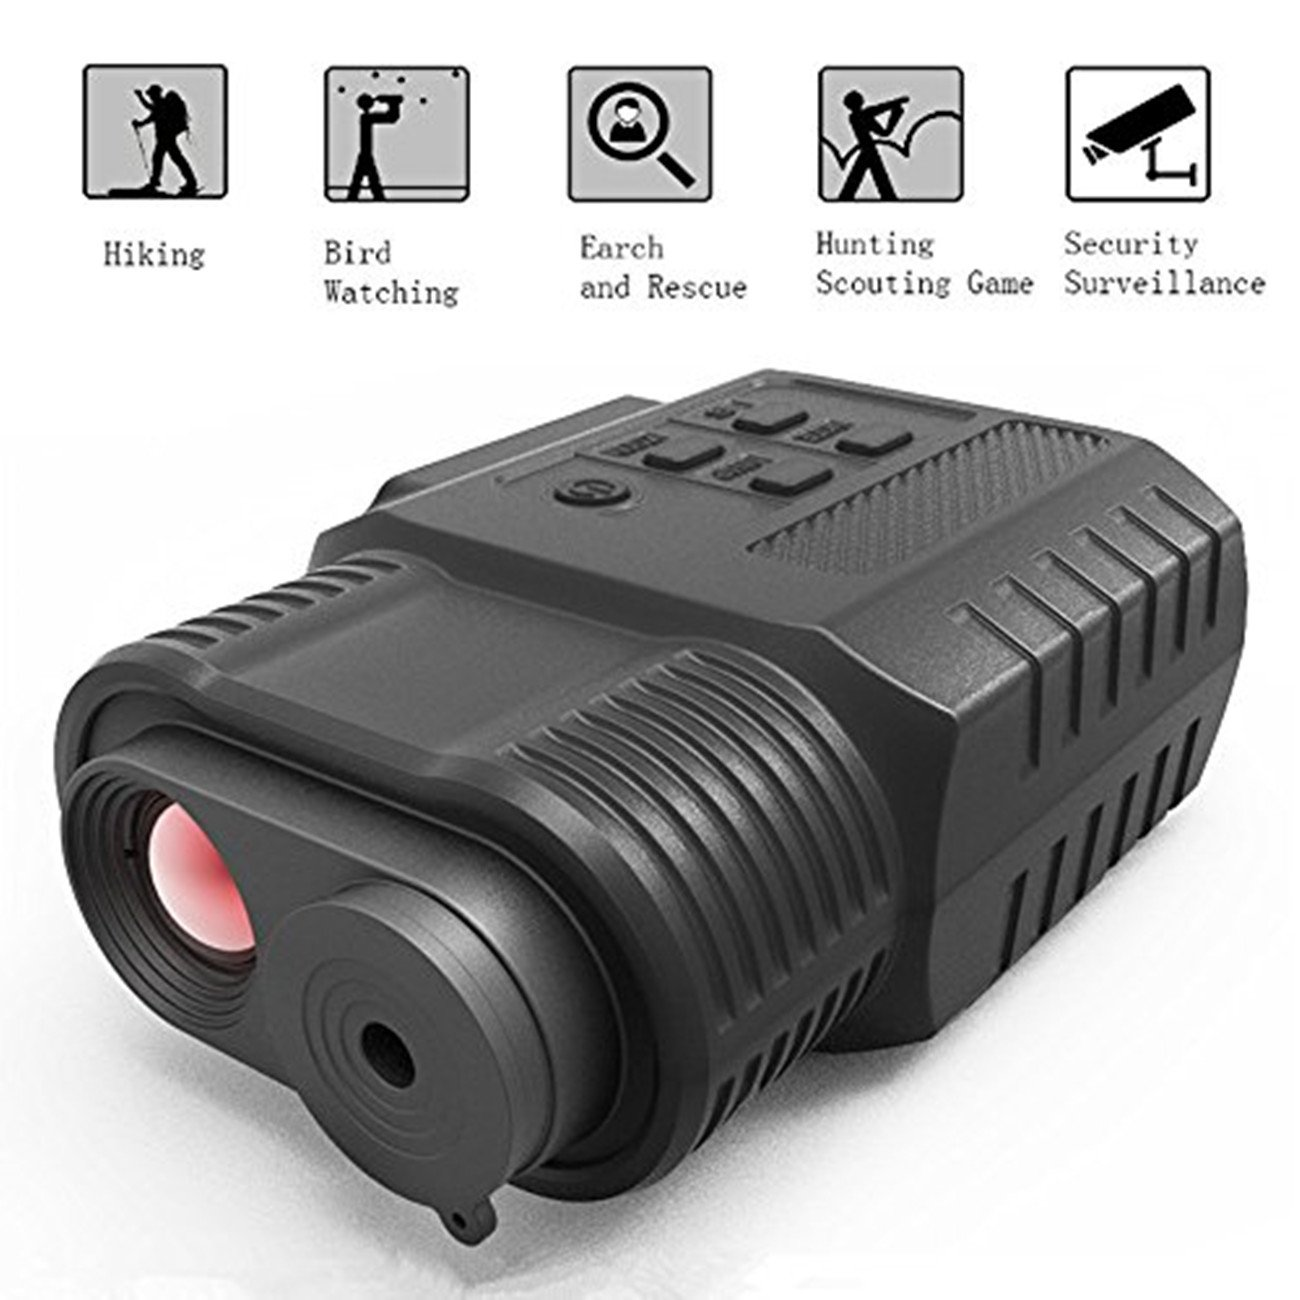 Night Vision Monocular, HD Digital Infrared Night Vision Hunting Monocular/Scope with Camera & Camcorder Function Takes Day and Night IR Photo & Video by SOLOMARK